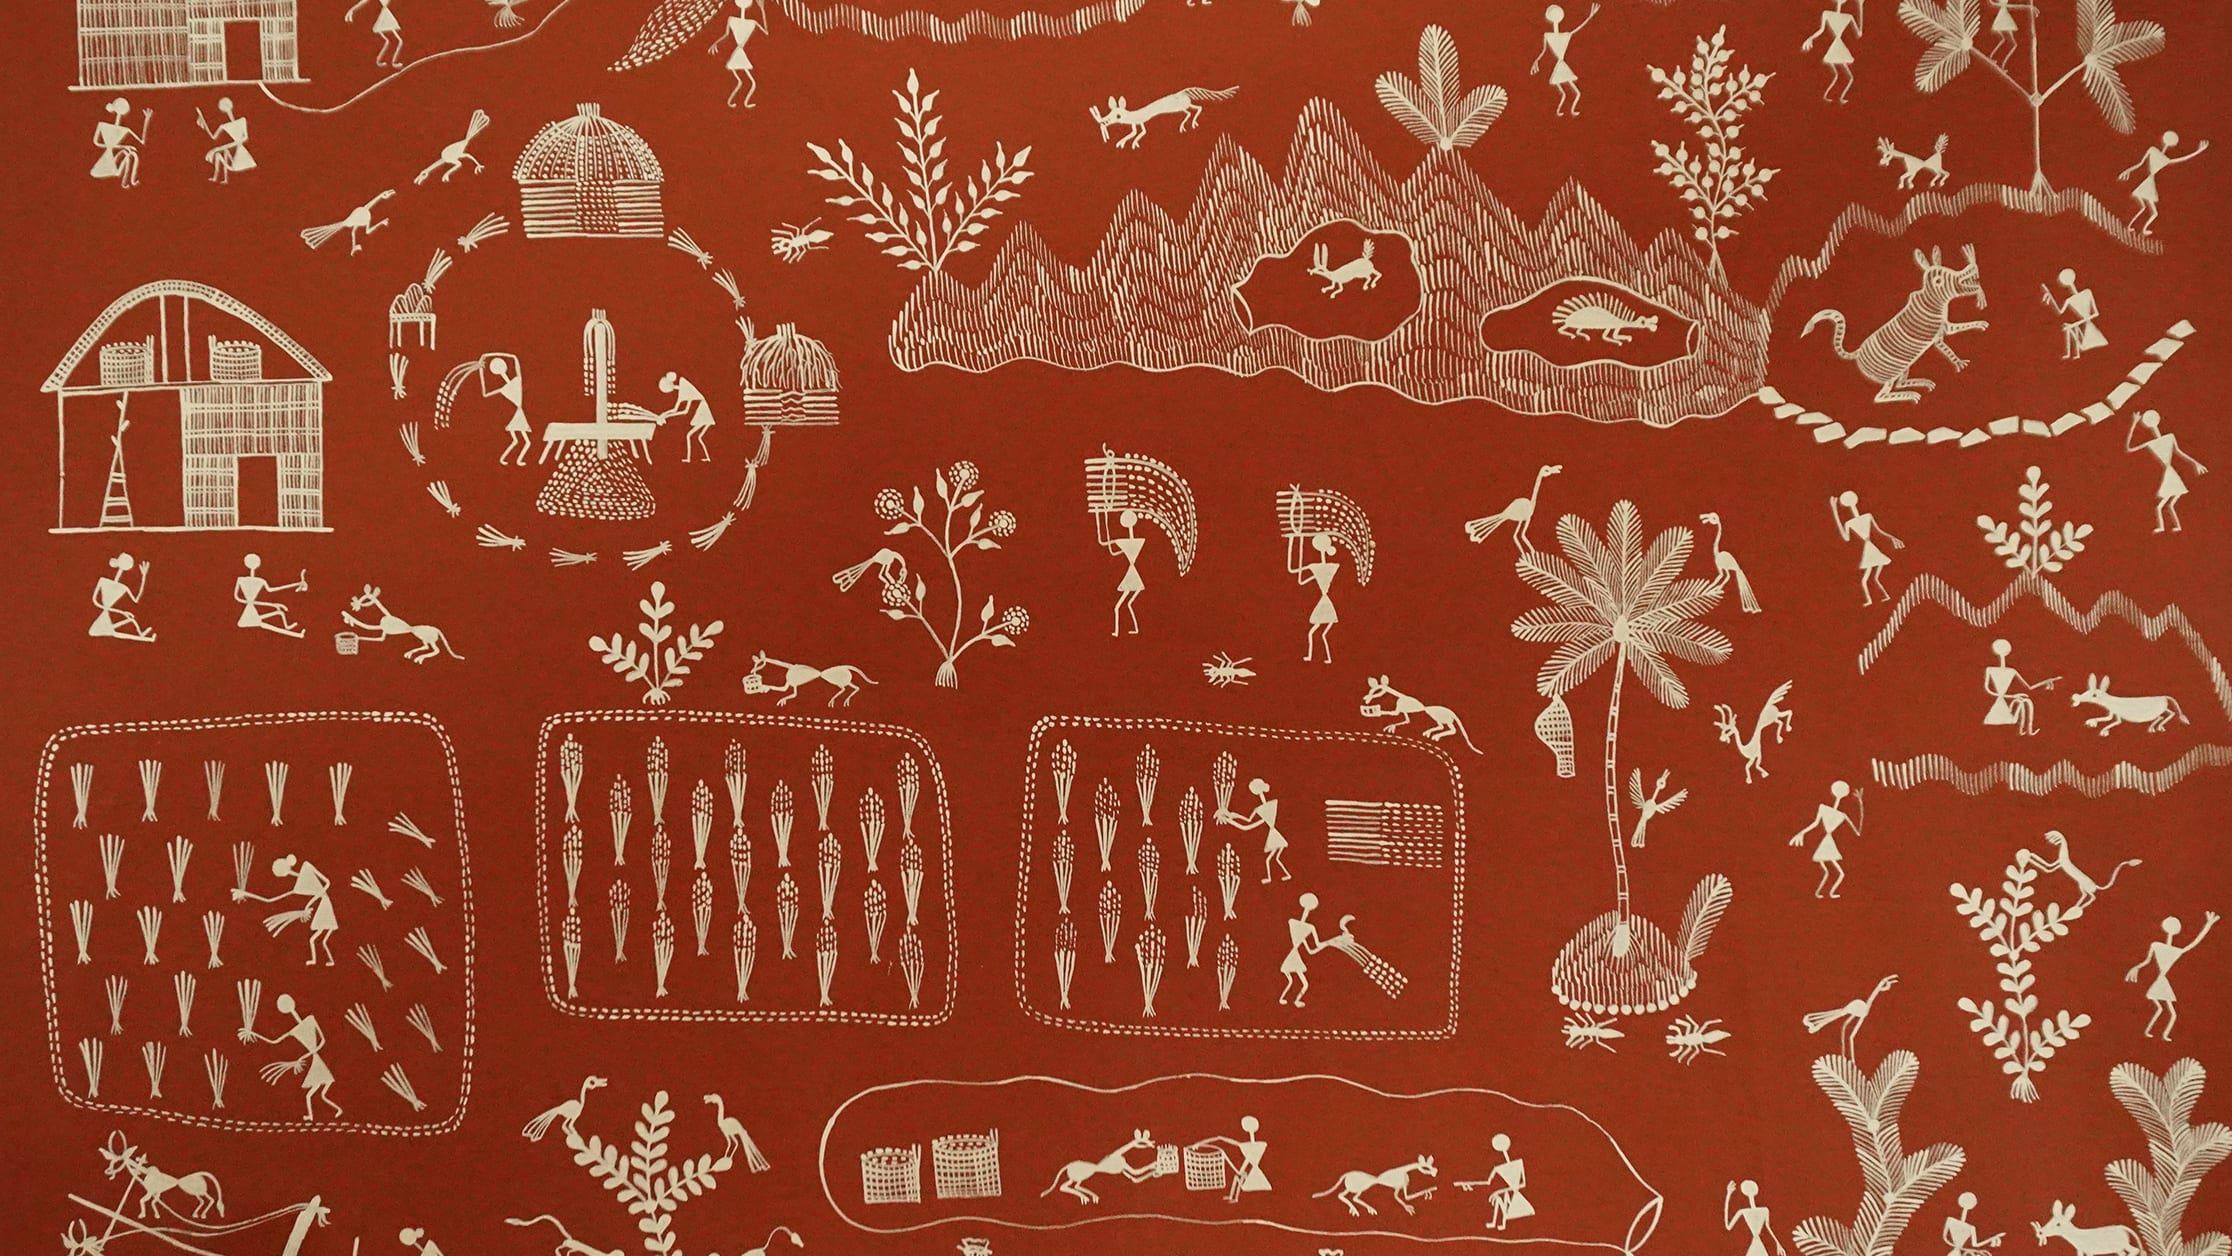 Scenes from everyday life, which include the integration of many different animals, are the main theme of Warli paintings, an ancient folkart form from Maharashtra. Photo: From Warli tribe archives, courtesy Prof. Pradip Prabhu.